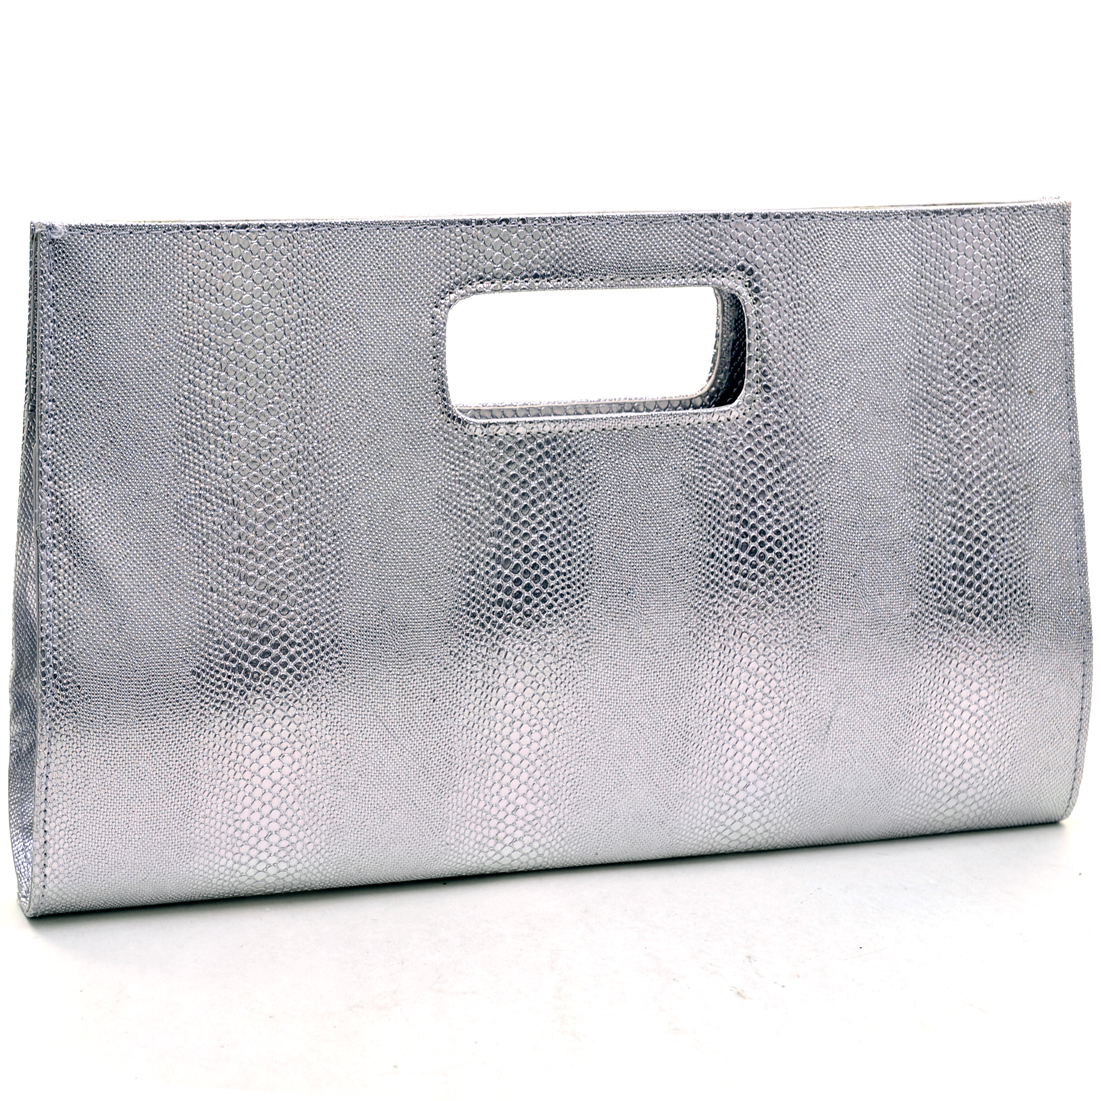 Dasein® Snakeskin Textured Evening Clutches With Kiss Design